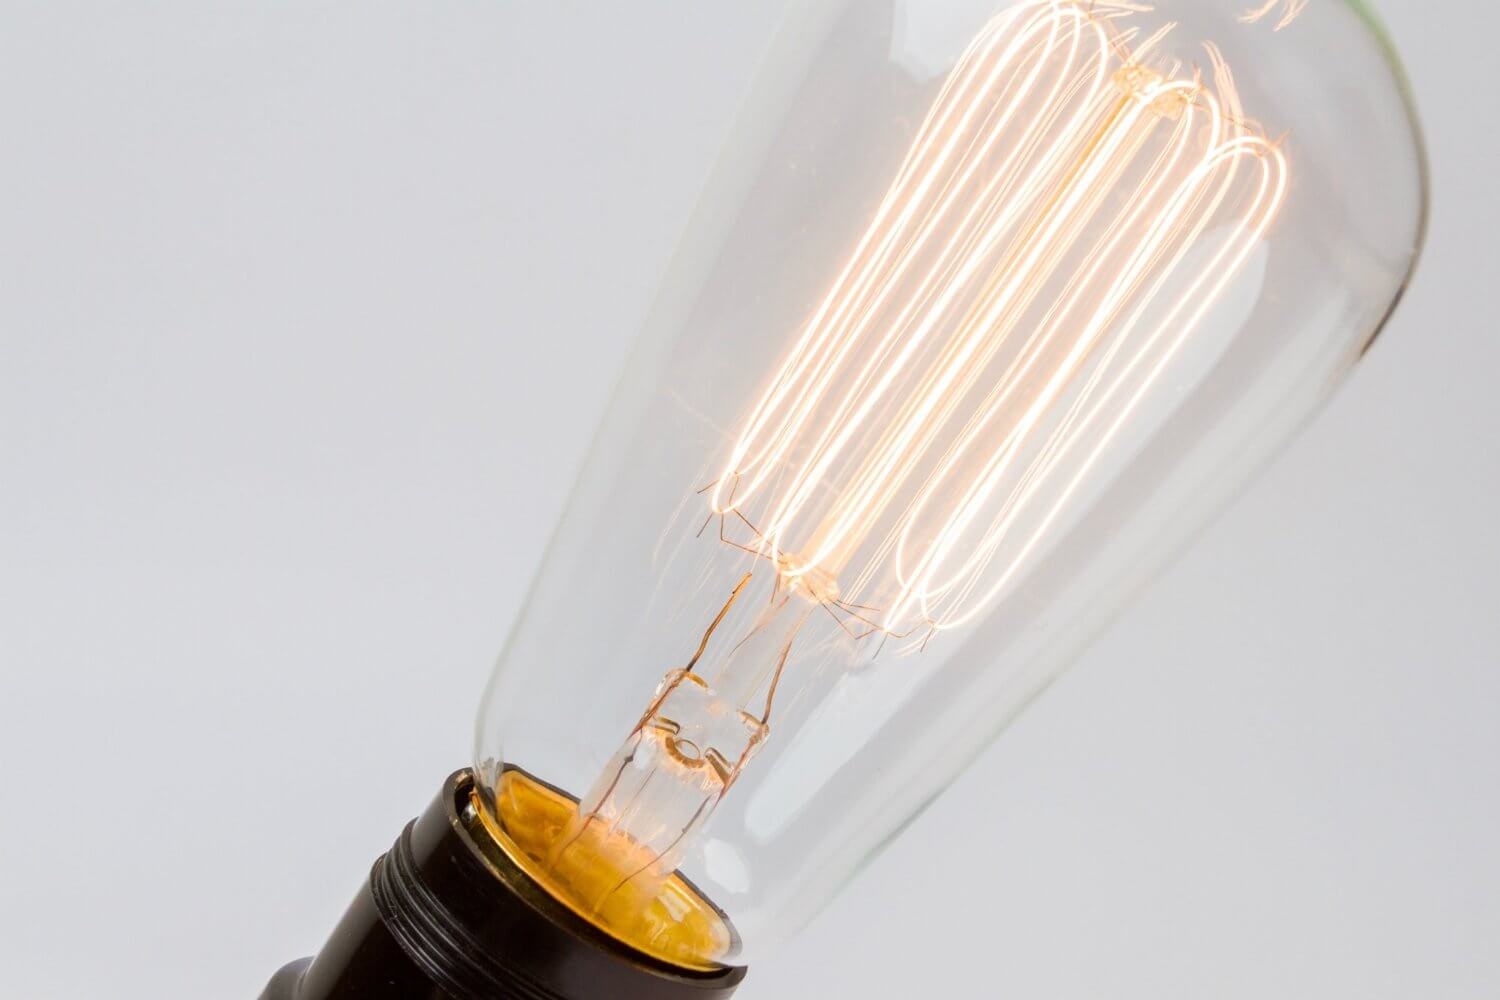 Clear Glass Thomas Edison Style Light Bulb